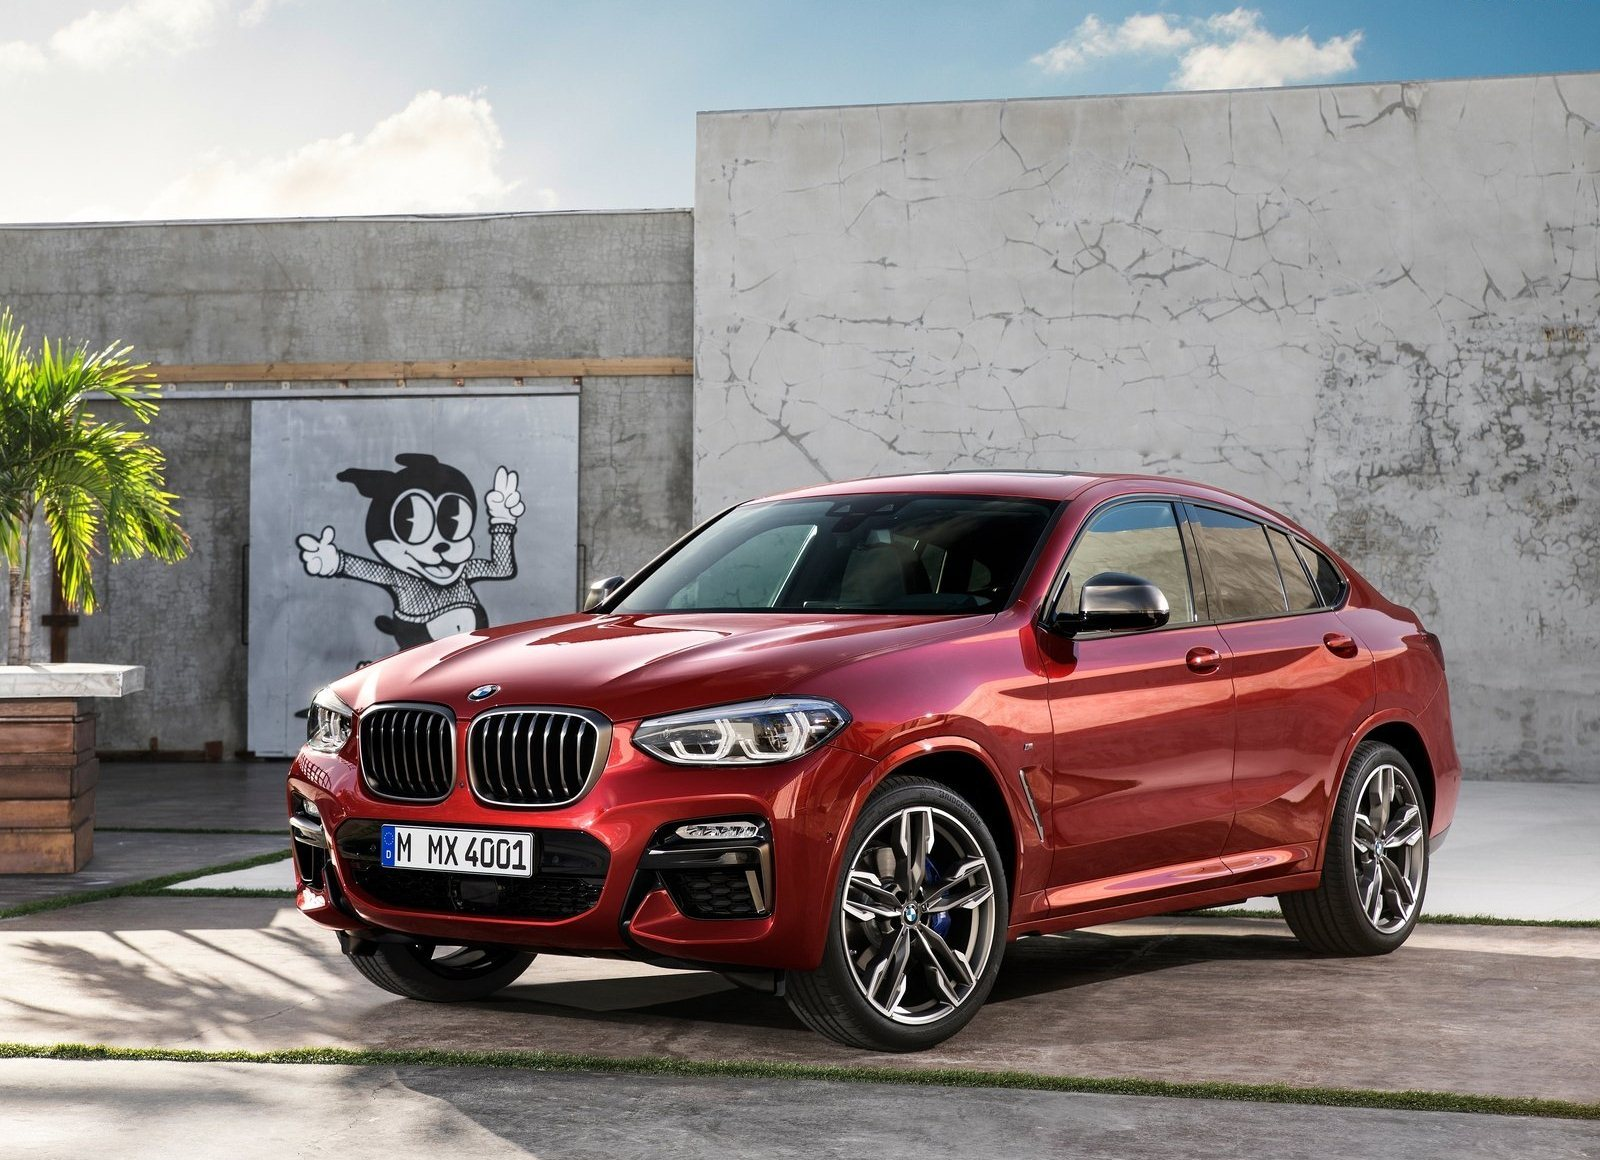 1600x1160 - BMW X4 Wallpapers 23